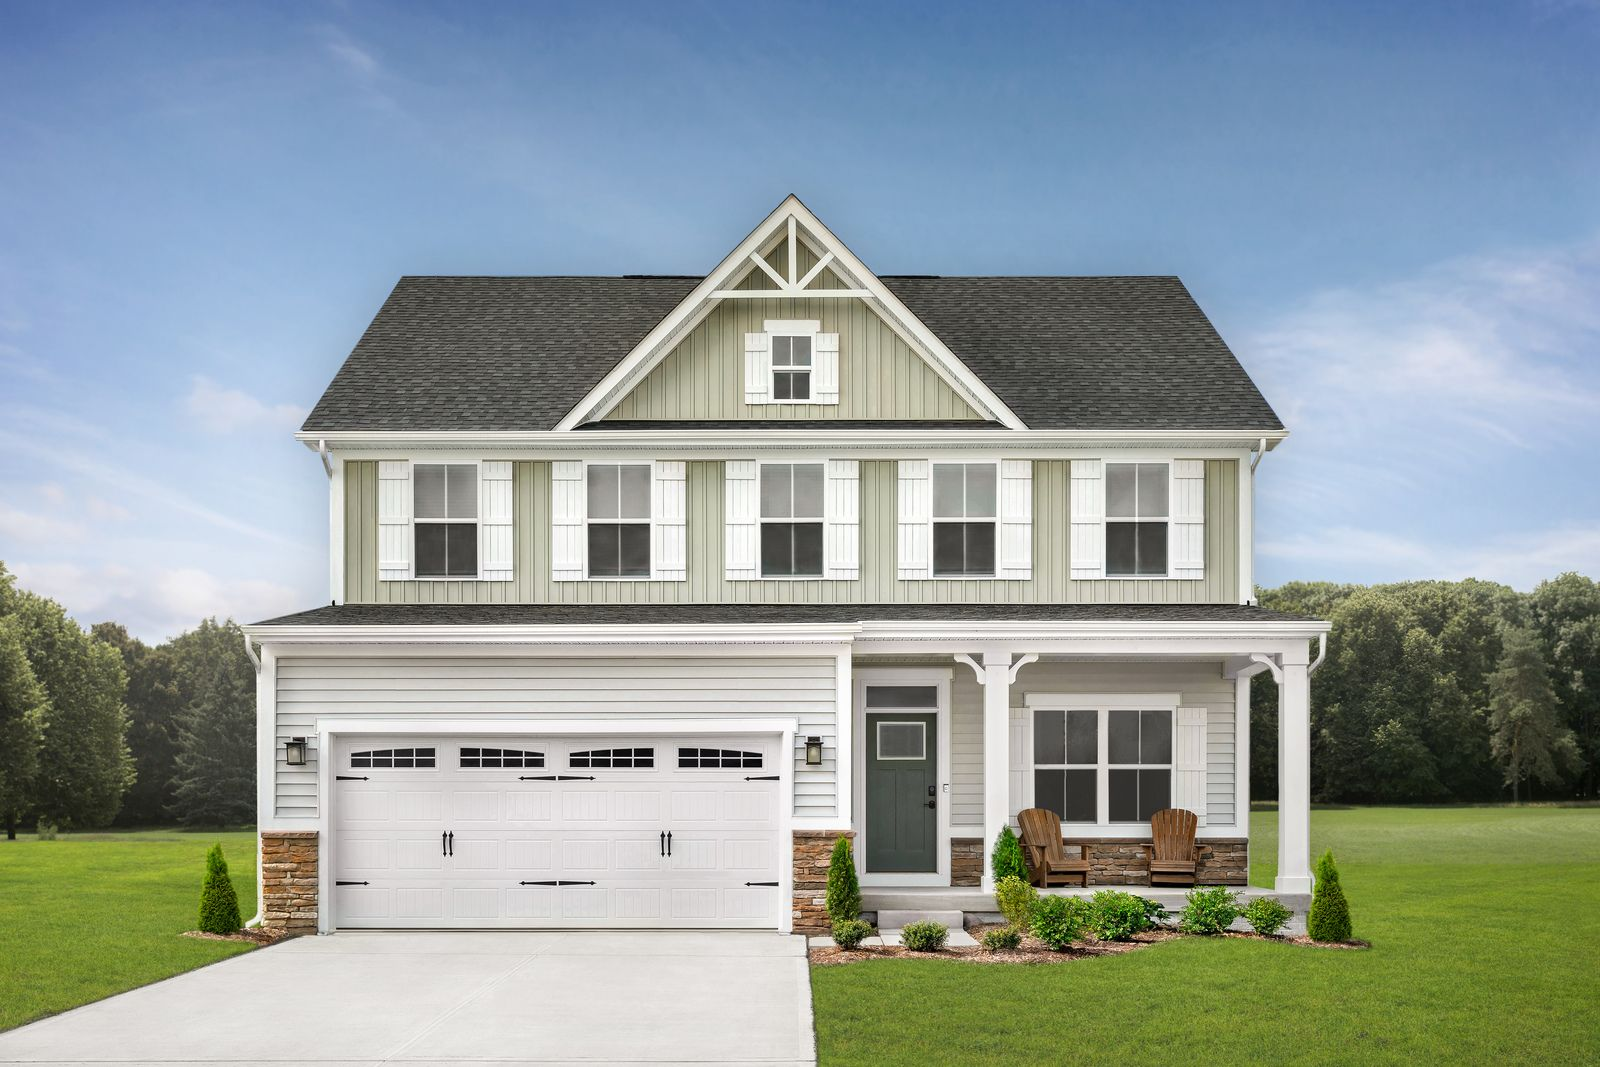 See why so many have already made Bishop Meadows their home:Only new construction 2-story homes in Perry Township with homesites up to 2 acres, from the mid $200s! Available 3-car garage, minutes to route 30/21.Click heretoschedule your visit today!